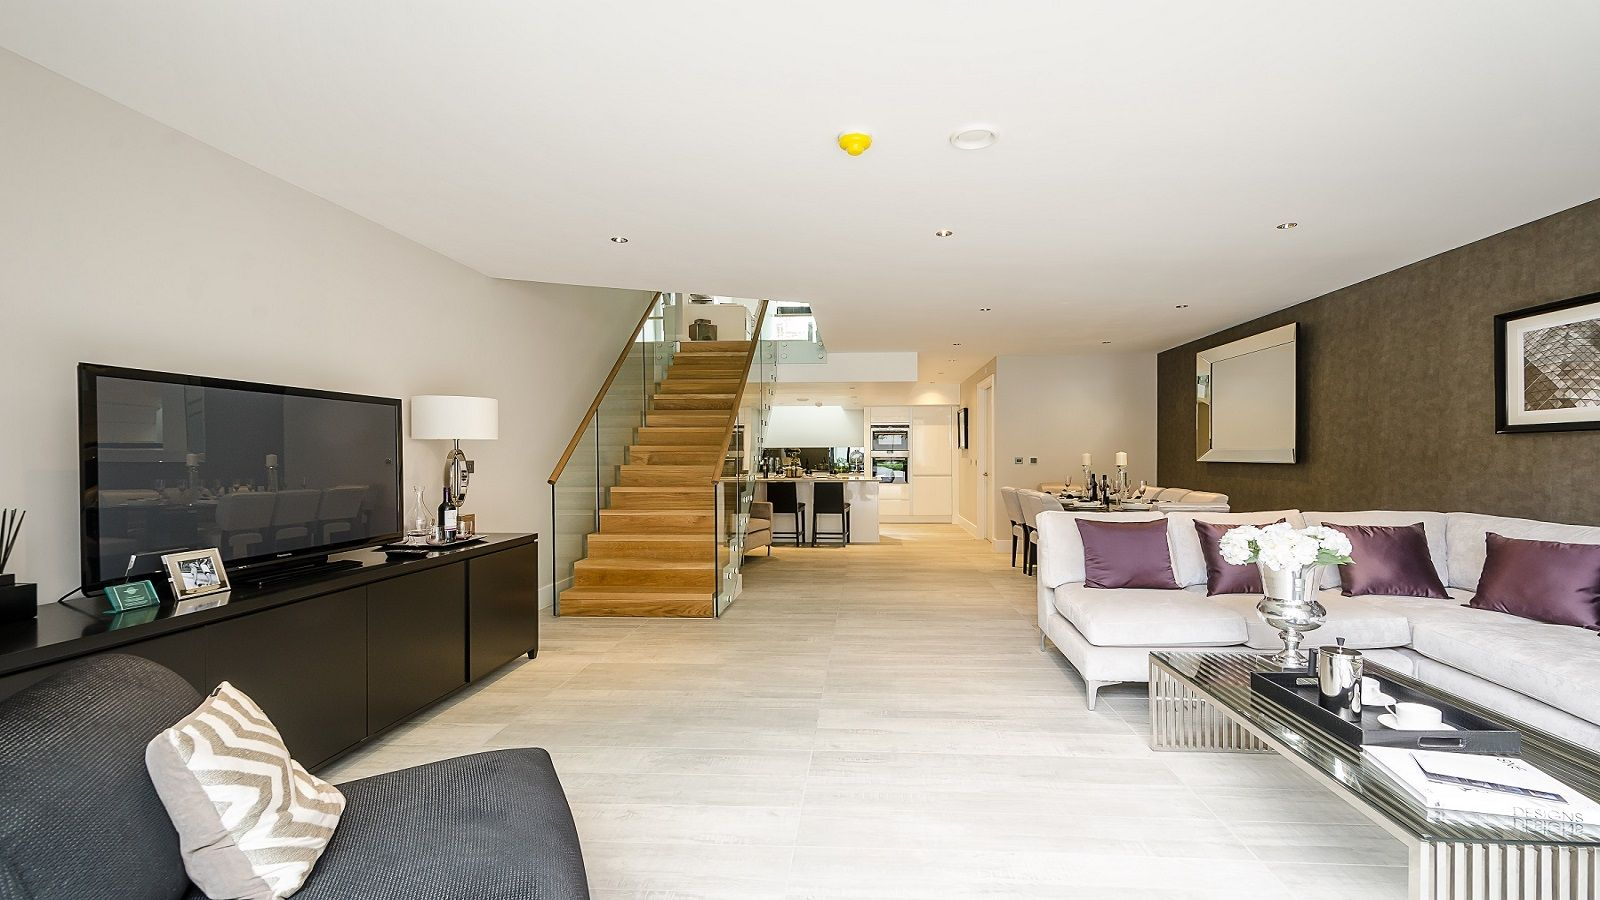 Mulberry Mews Taylor Wimpey Central London Living Room Design  # Muebles Tipo Wimpy